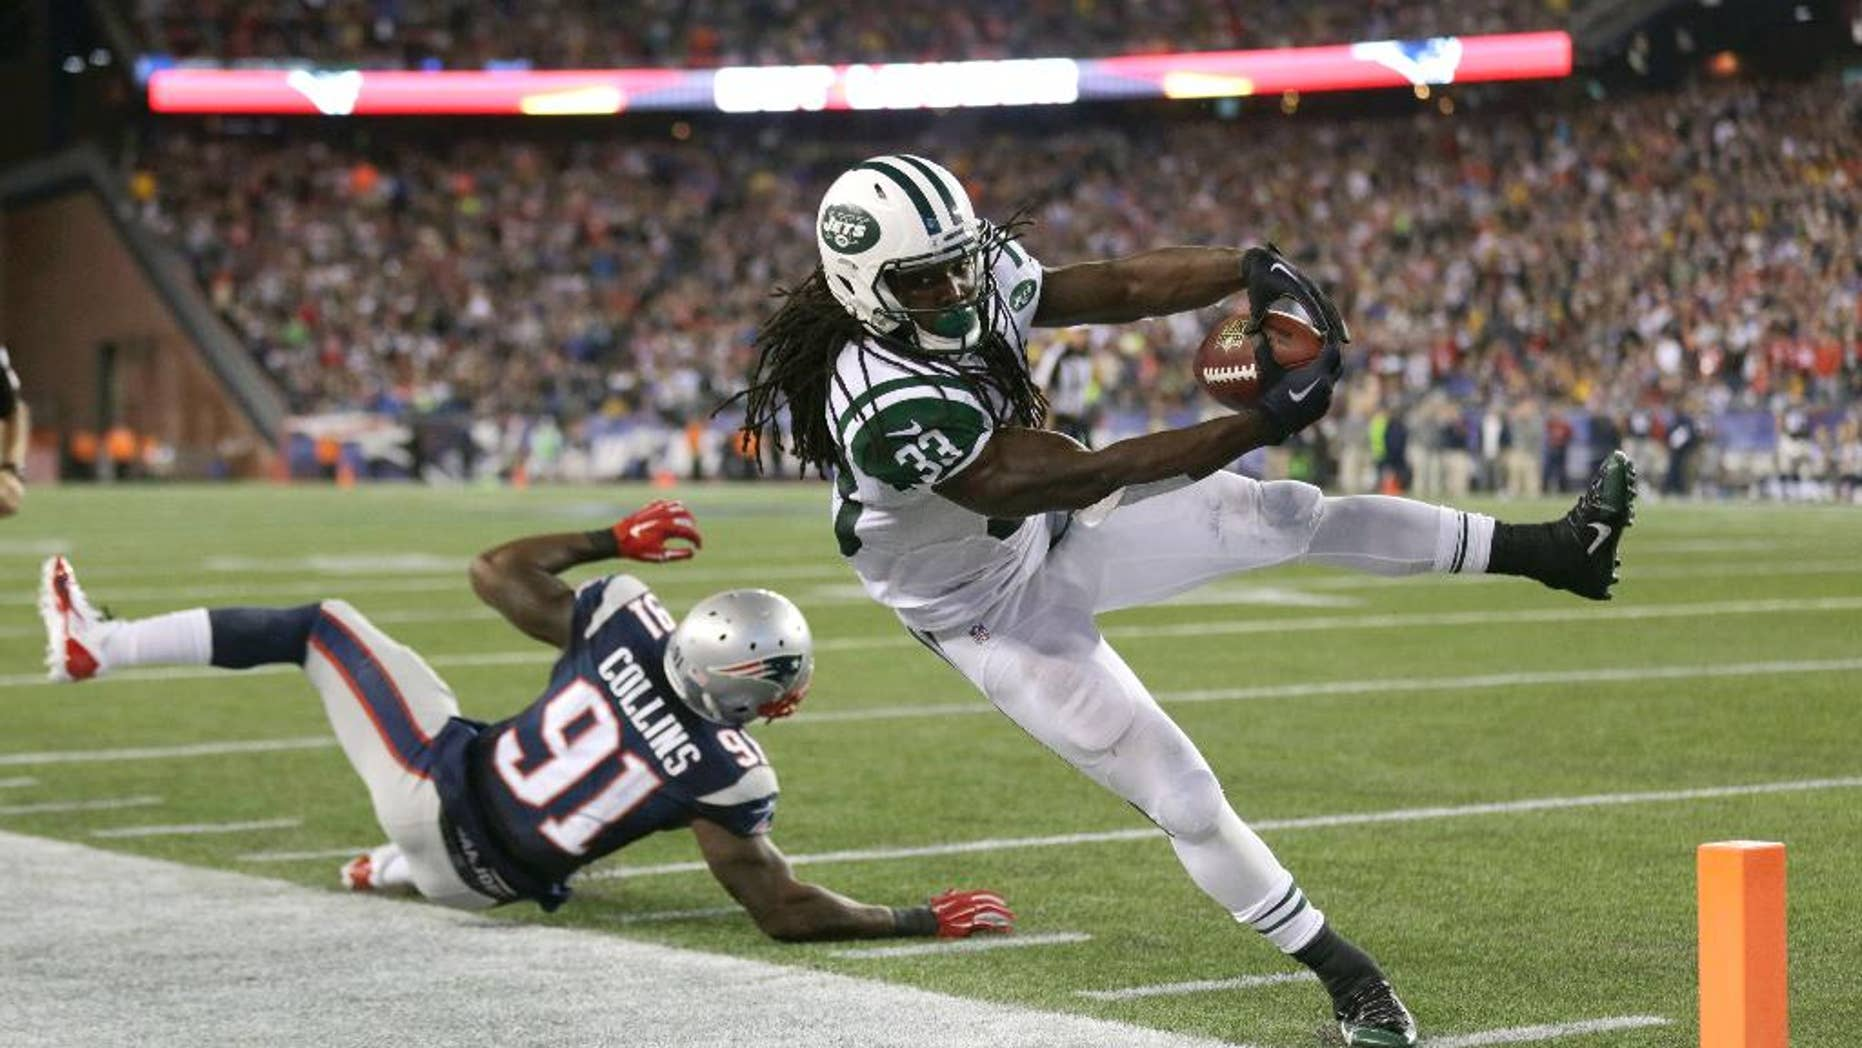 New York Jets running back Chris Ivory (33) goes out of bounds just short of the goal line next to New England Patriots outside linebacker Jamie Collins (91) in the second half of an NFL football game Thursday, Oct. 16, 2014, in Foxborough, Mass. (AP Photo/Charles Krupa)